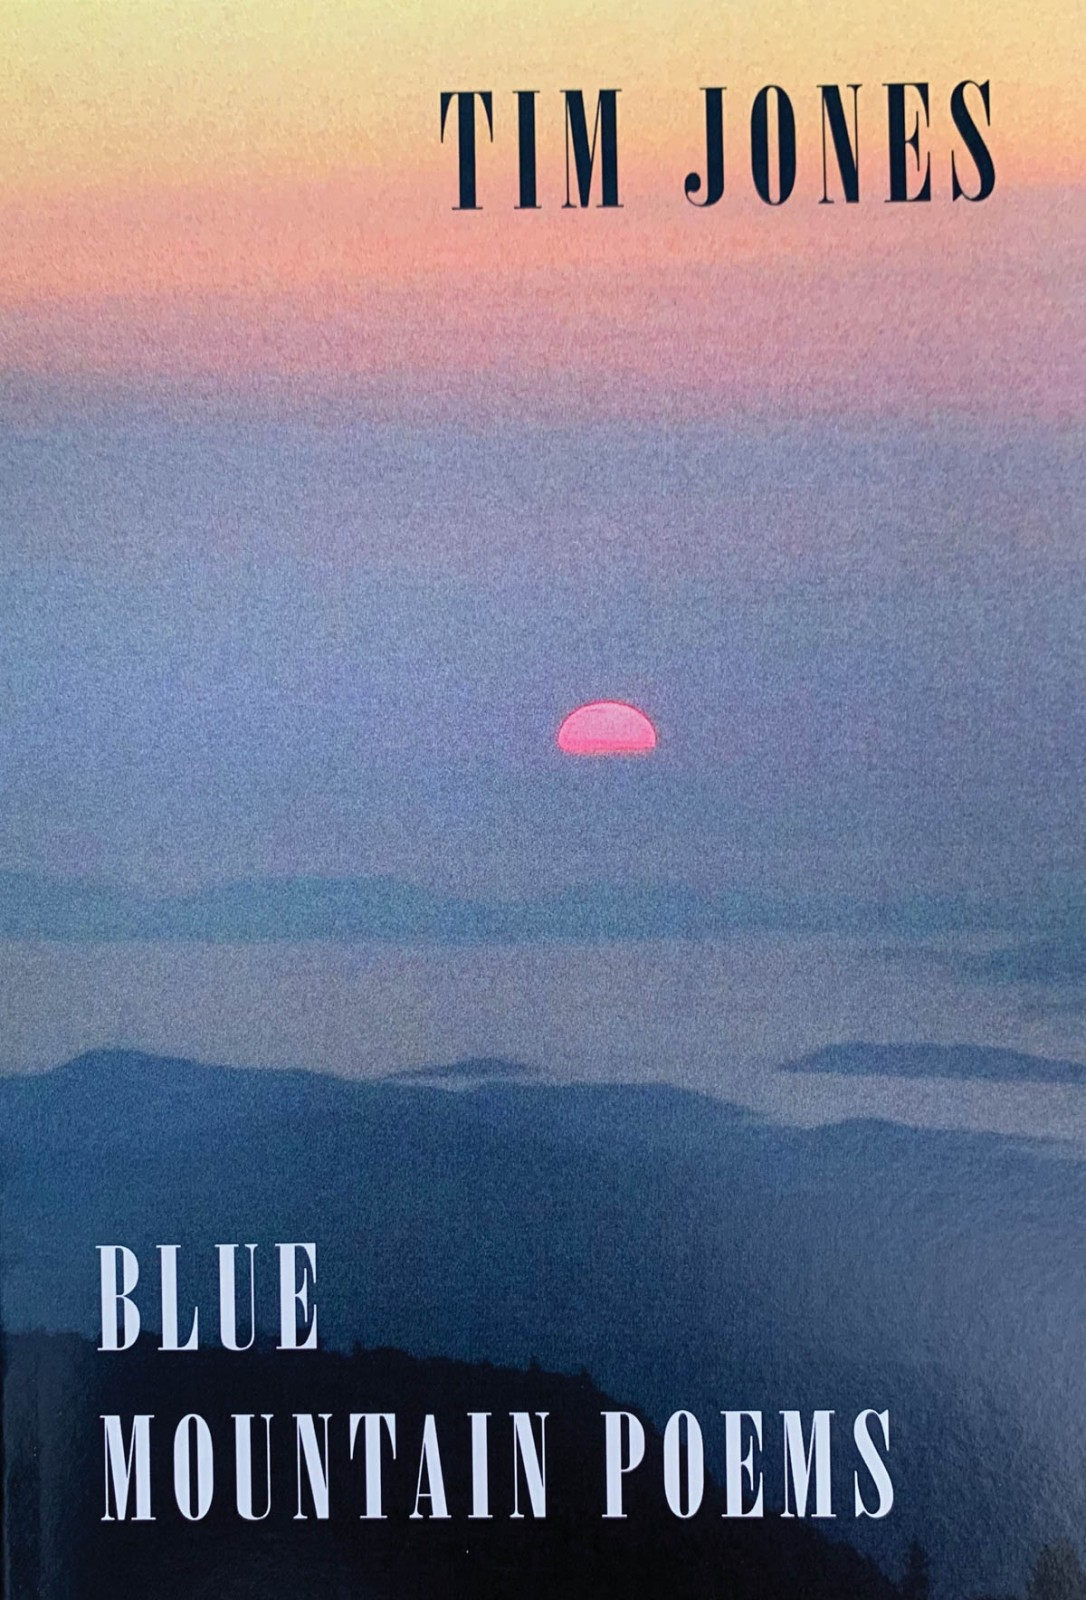 Blue Mountain Poems